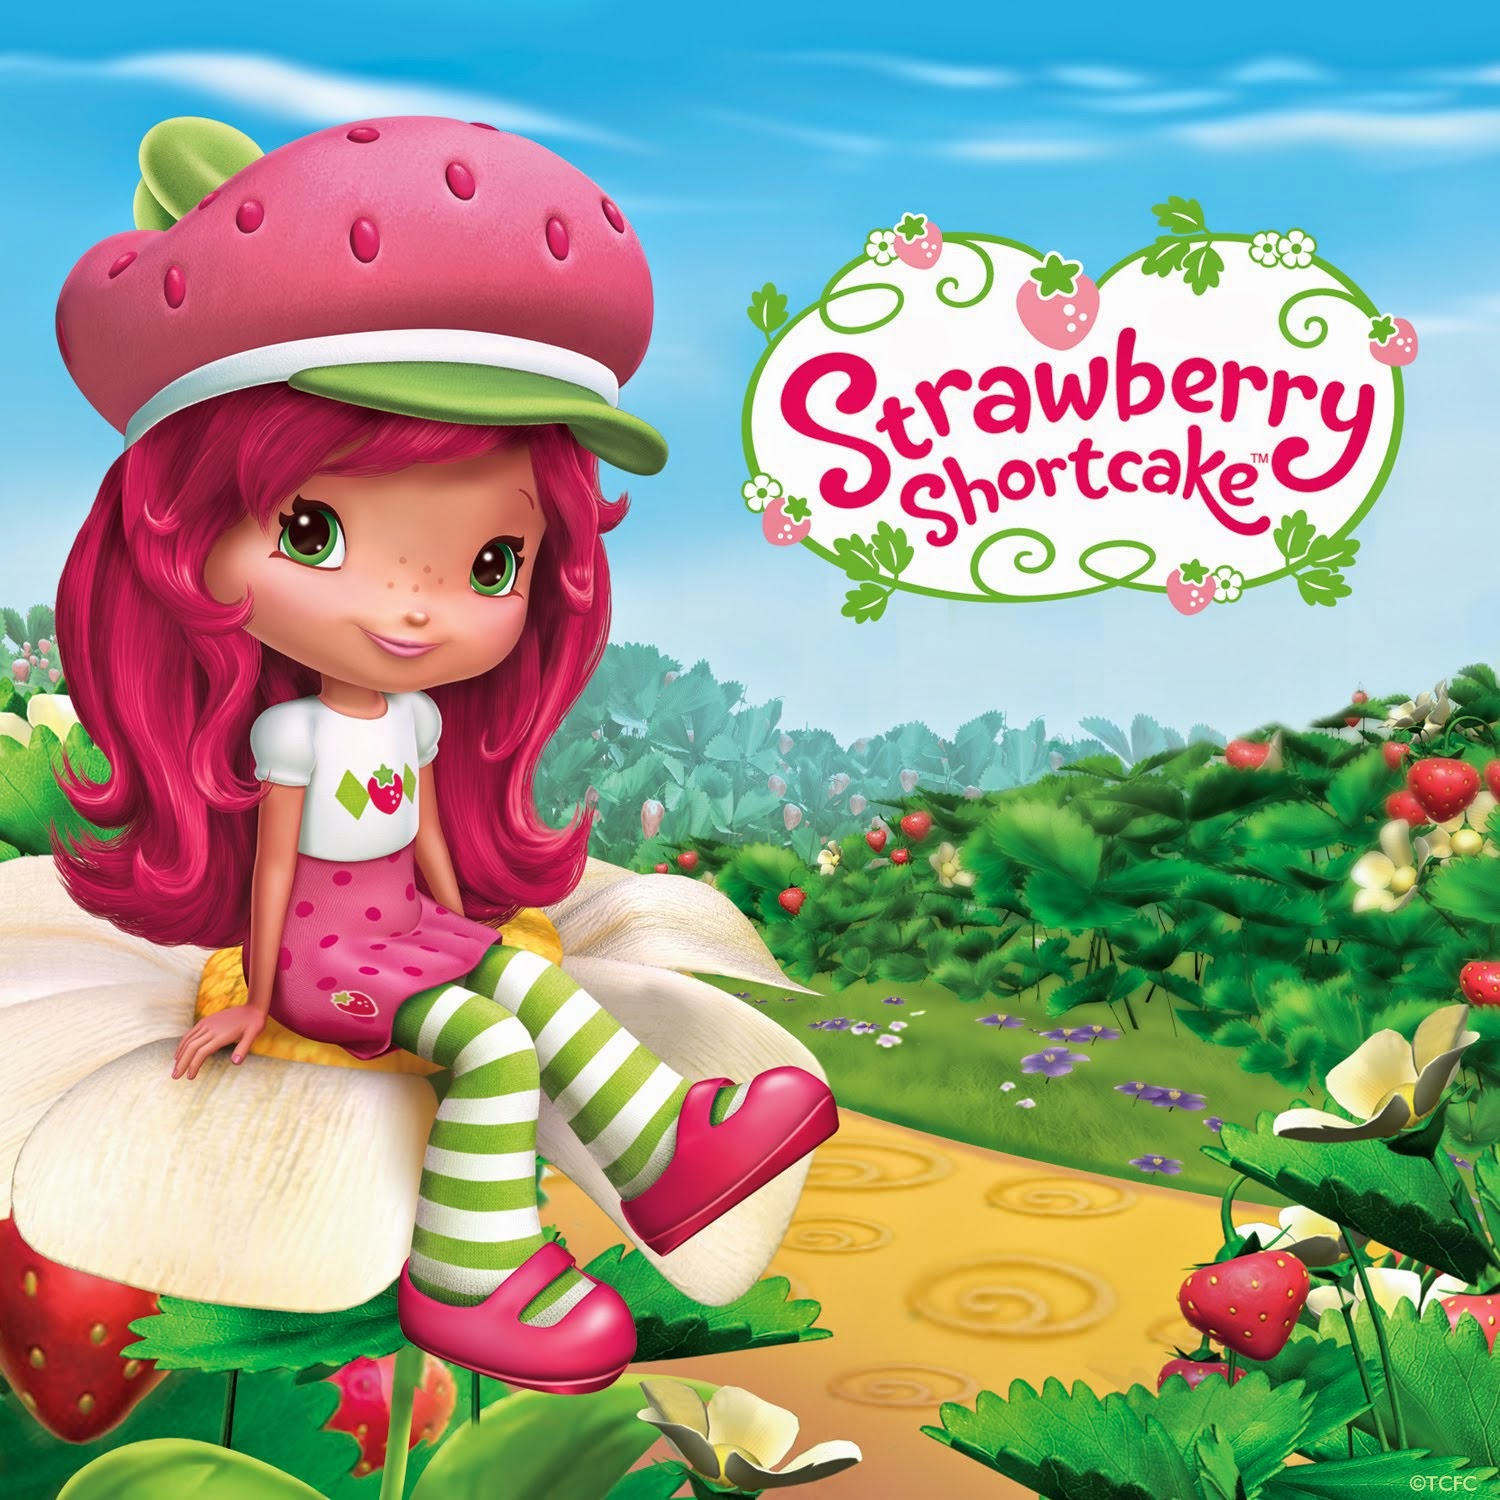 Strawberry Shortcake Blogger!